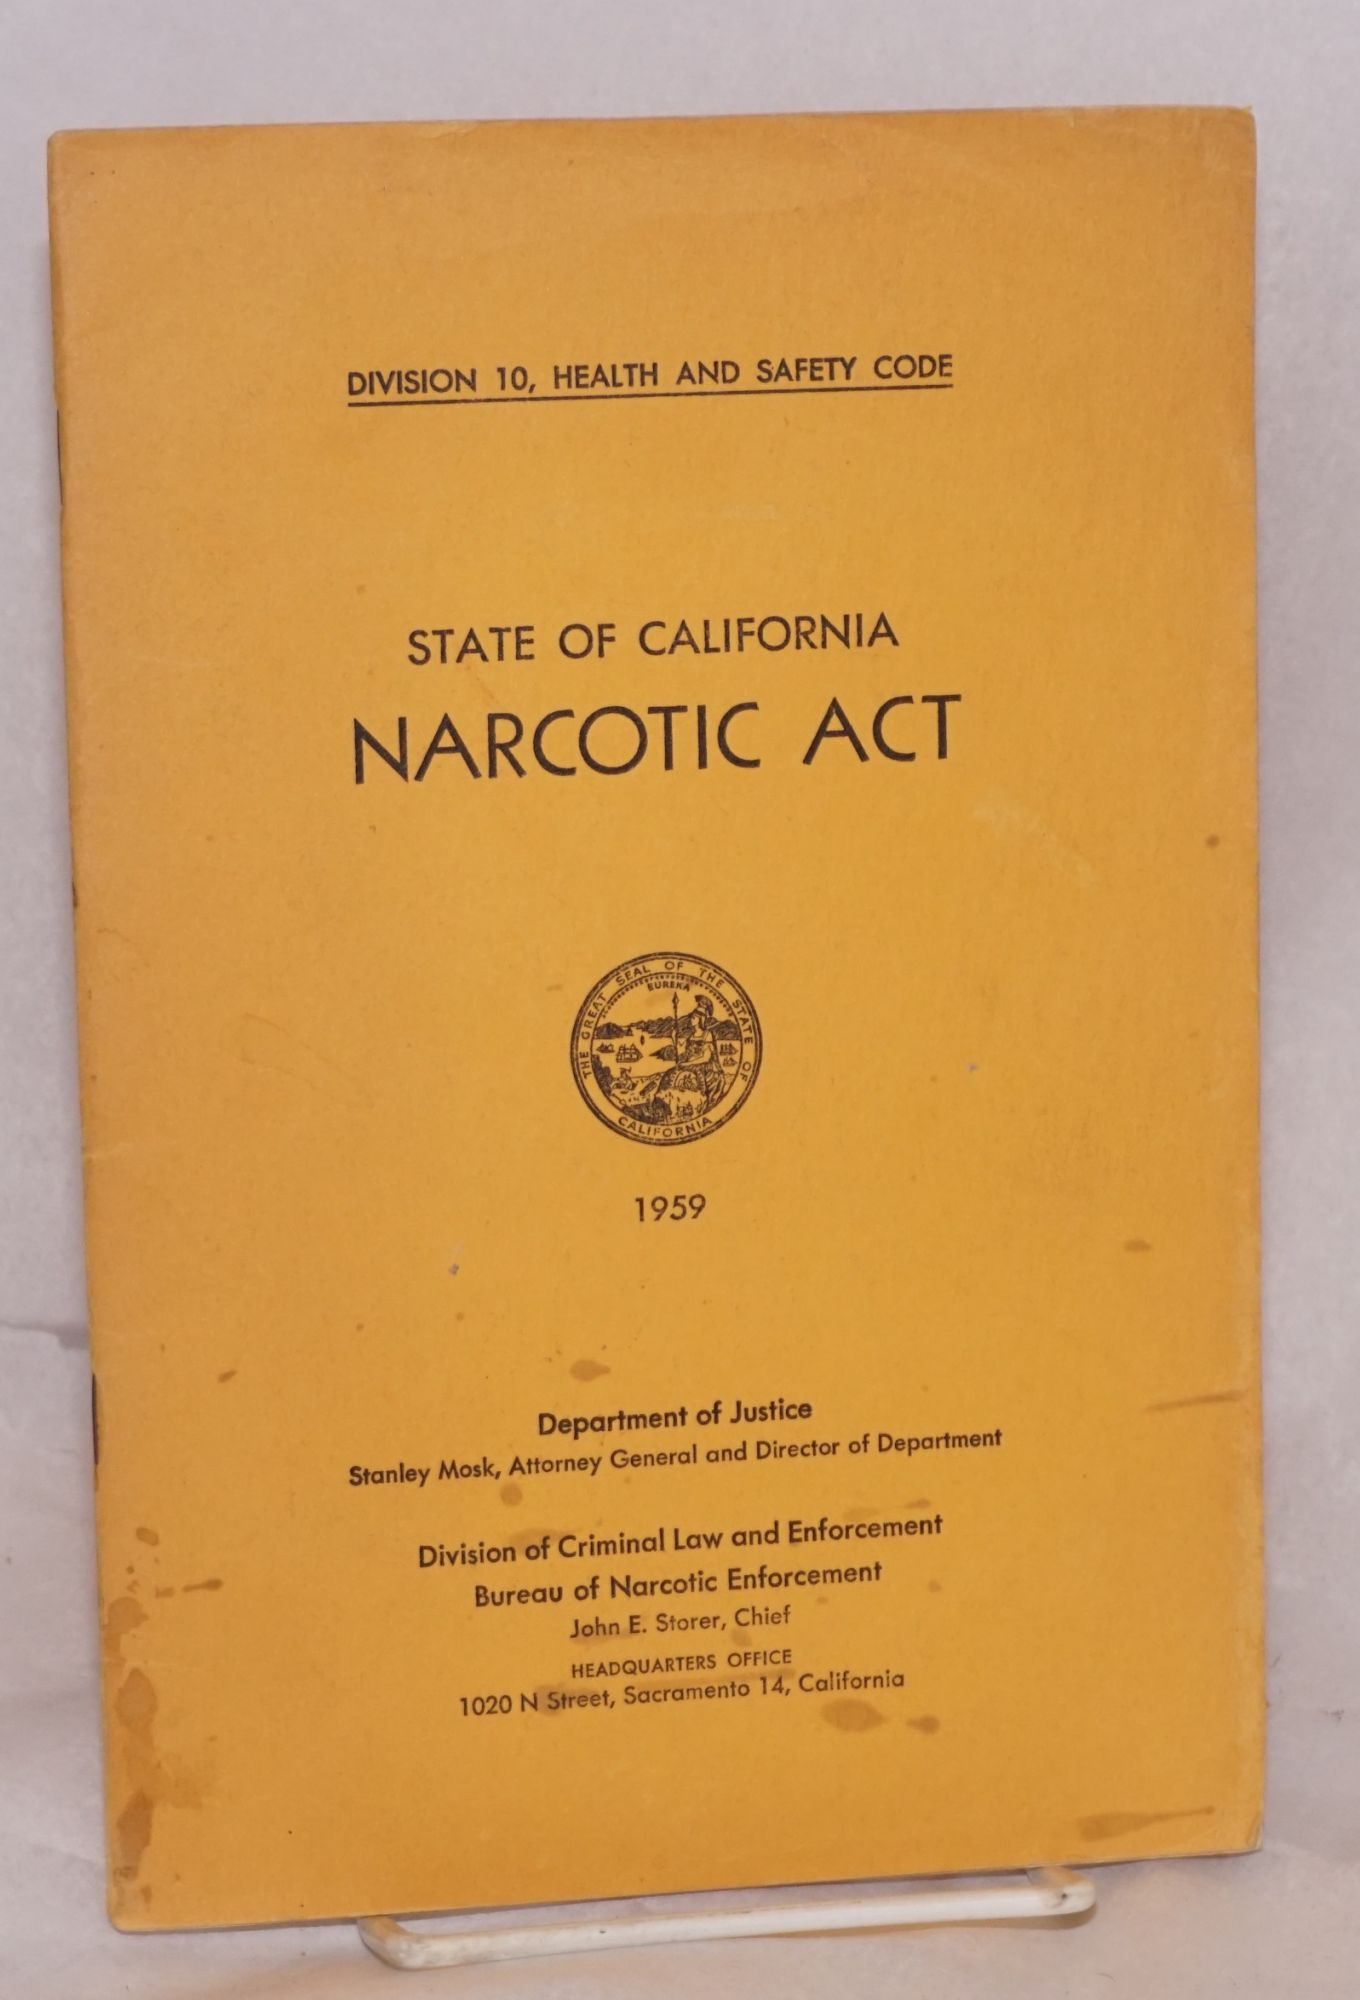 State of California narcotic act 1959